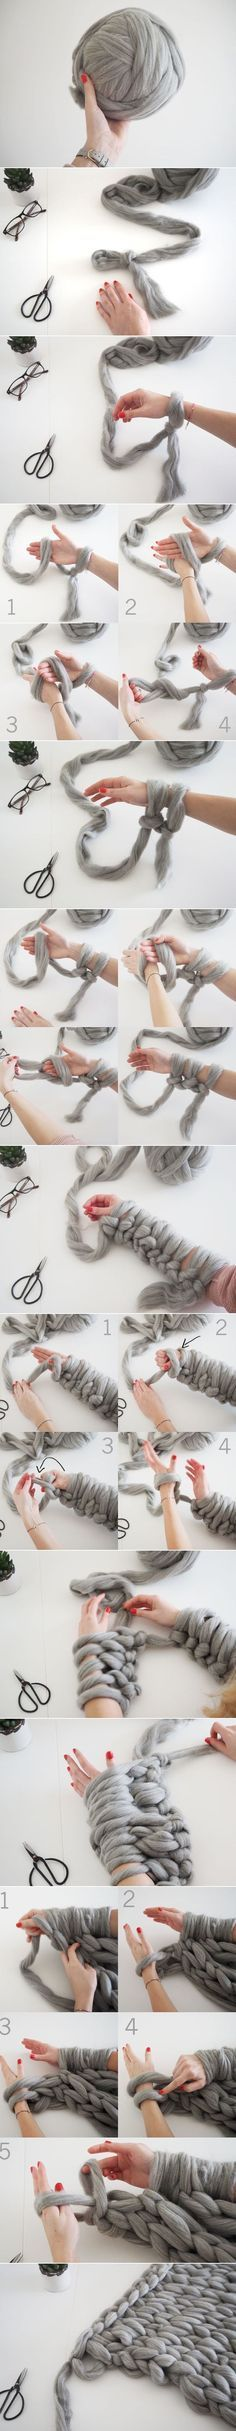 DIY - Knit a chunky blanket from wool roving | 17 Cozy DIY Projects to Keep You Warm This Winter